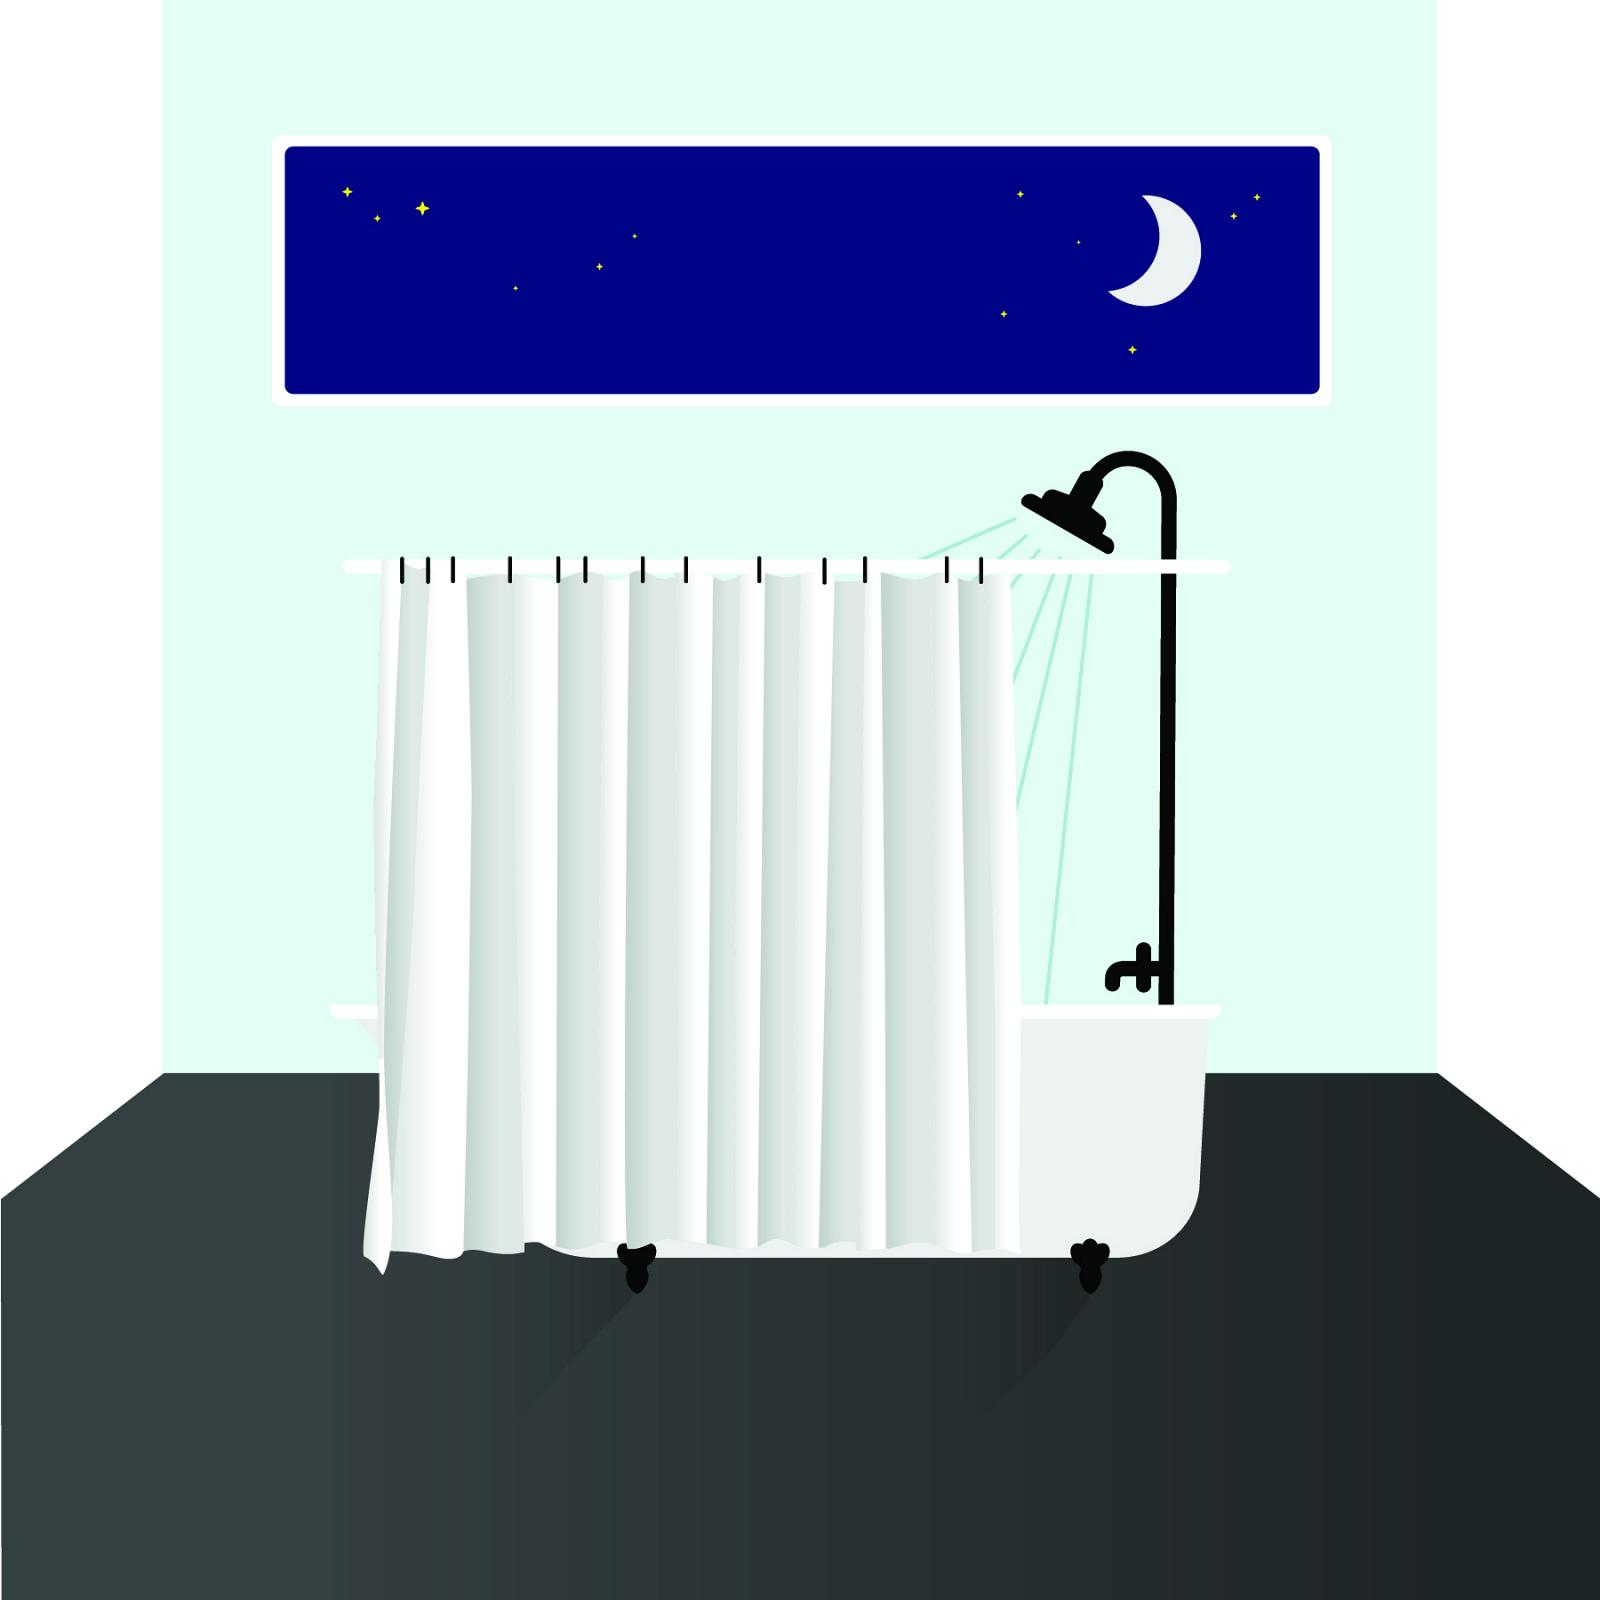 Illustration of a shower at nighttime